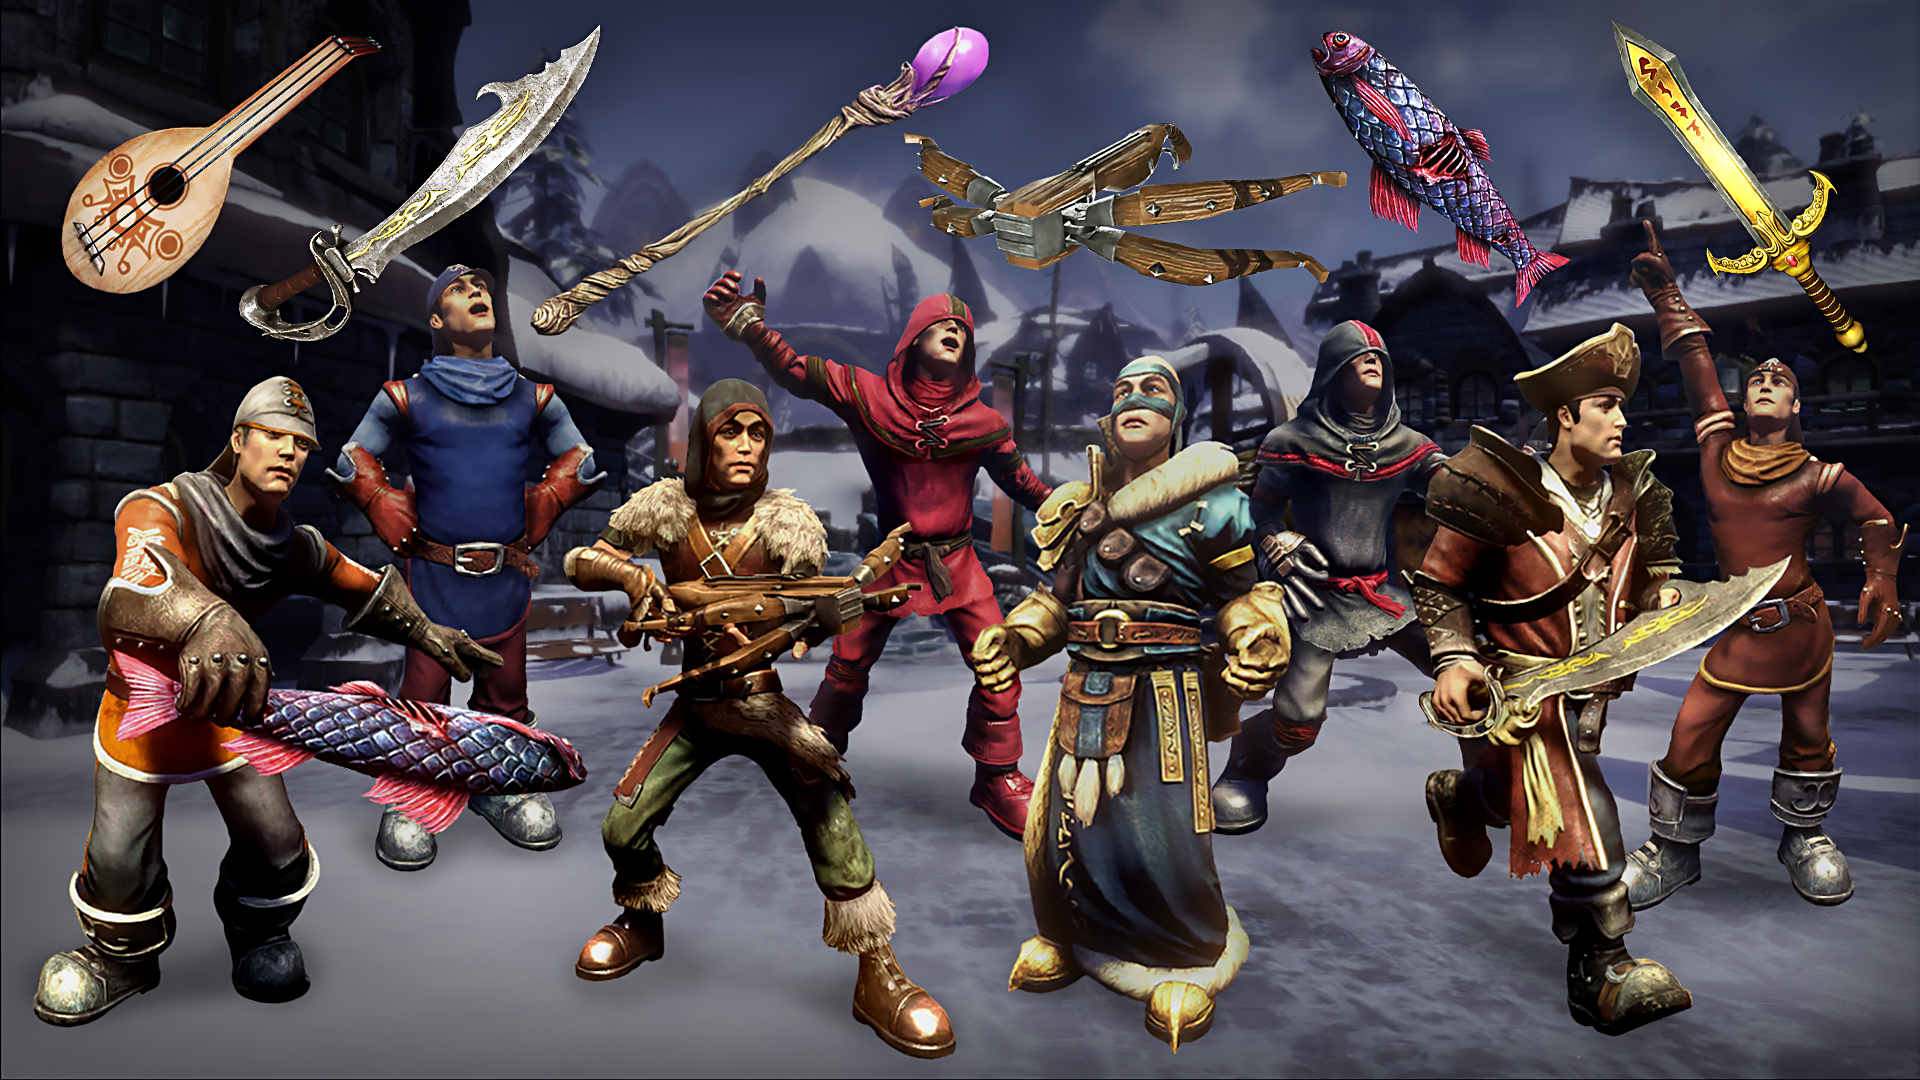 Fable anniversary outfits ~ Steam community guide dlc weapon and outfit